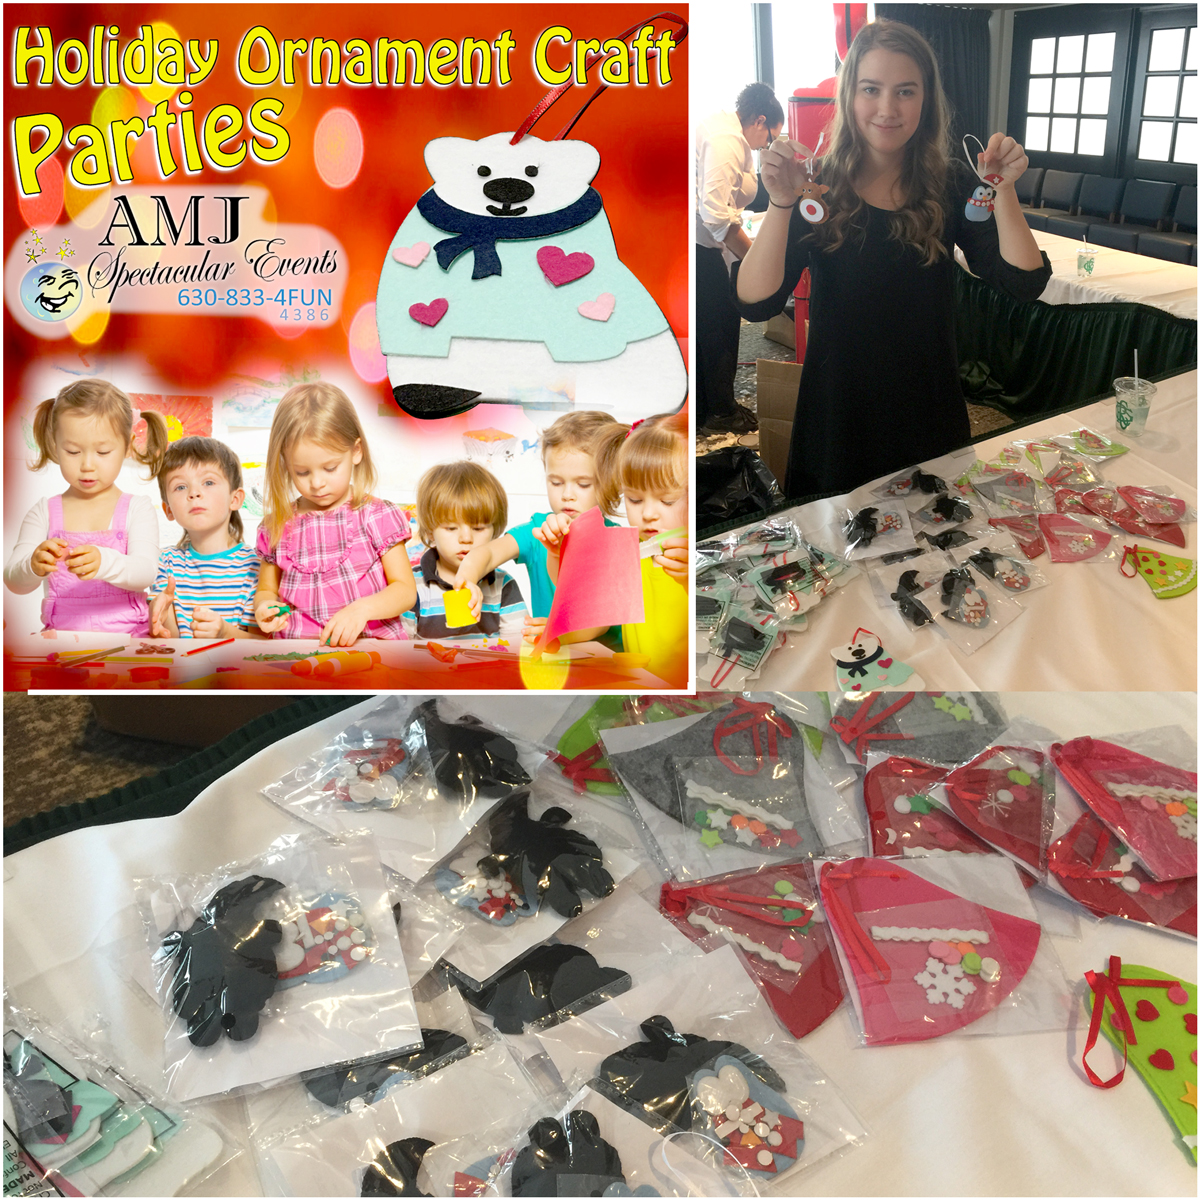 Kids Holiday Ornament Craft Events from AMJ Spectacular Events